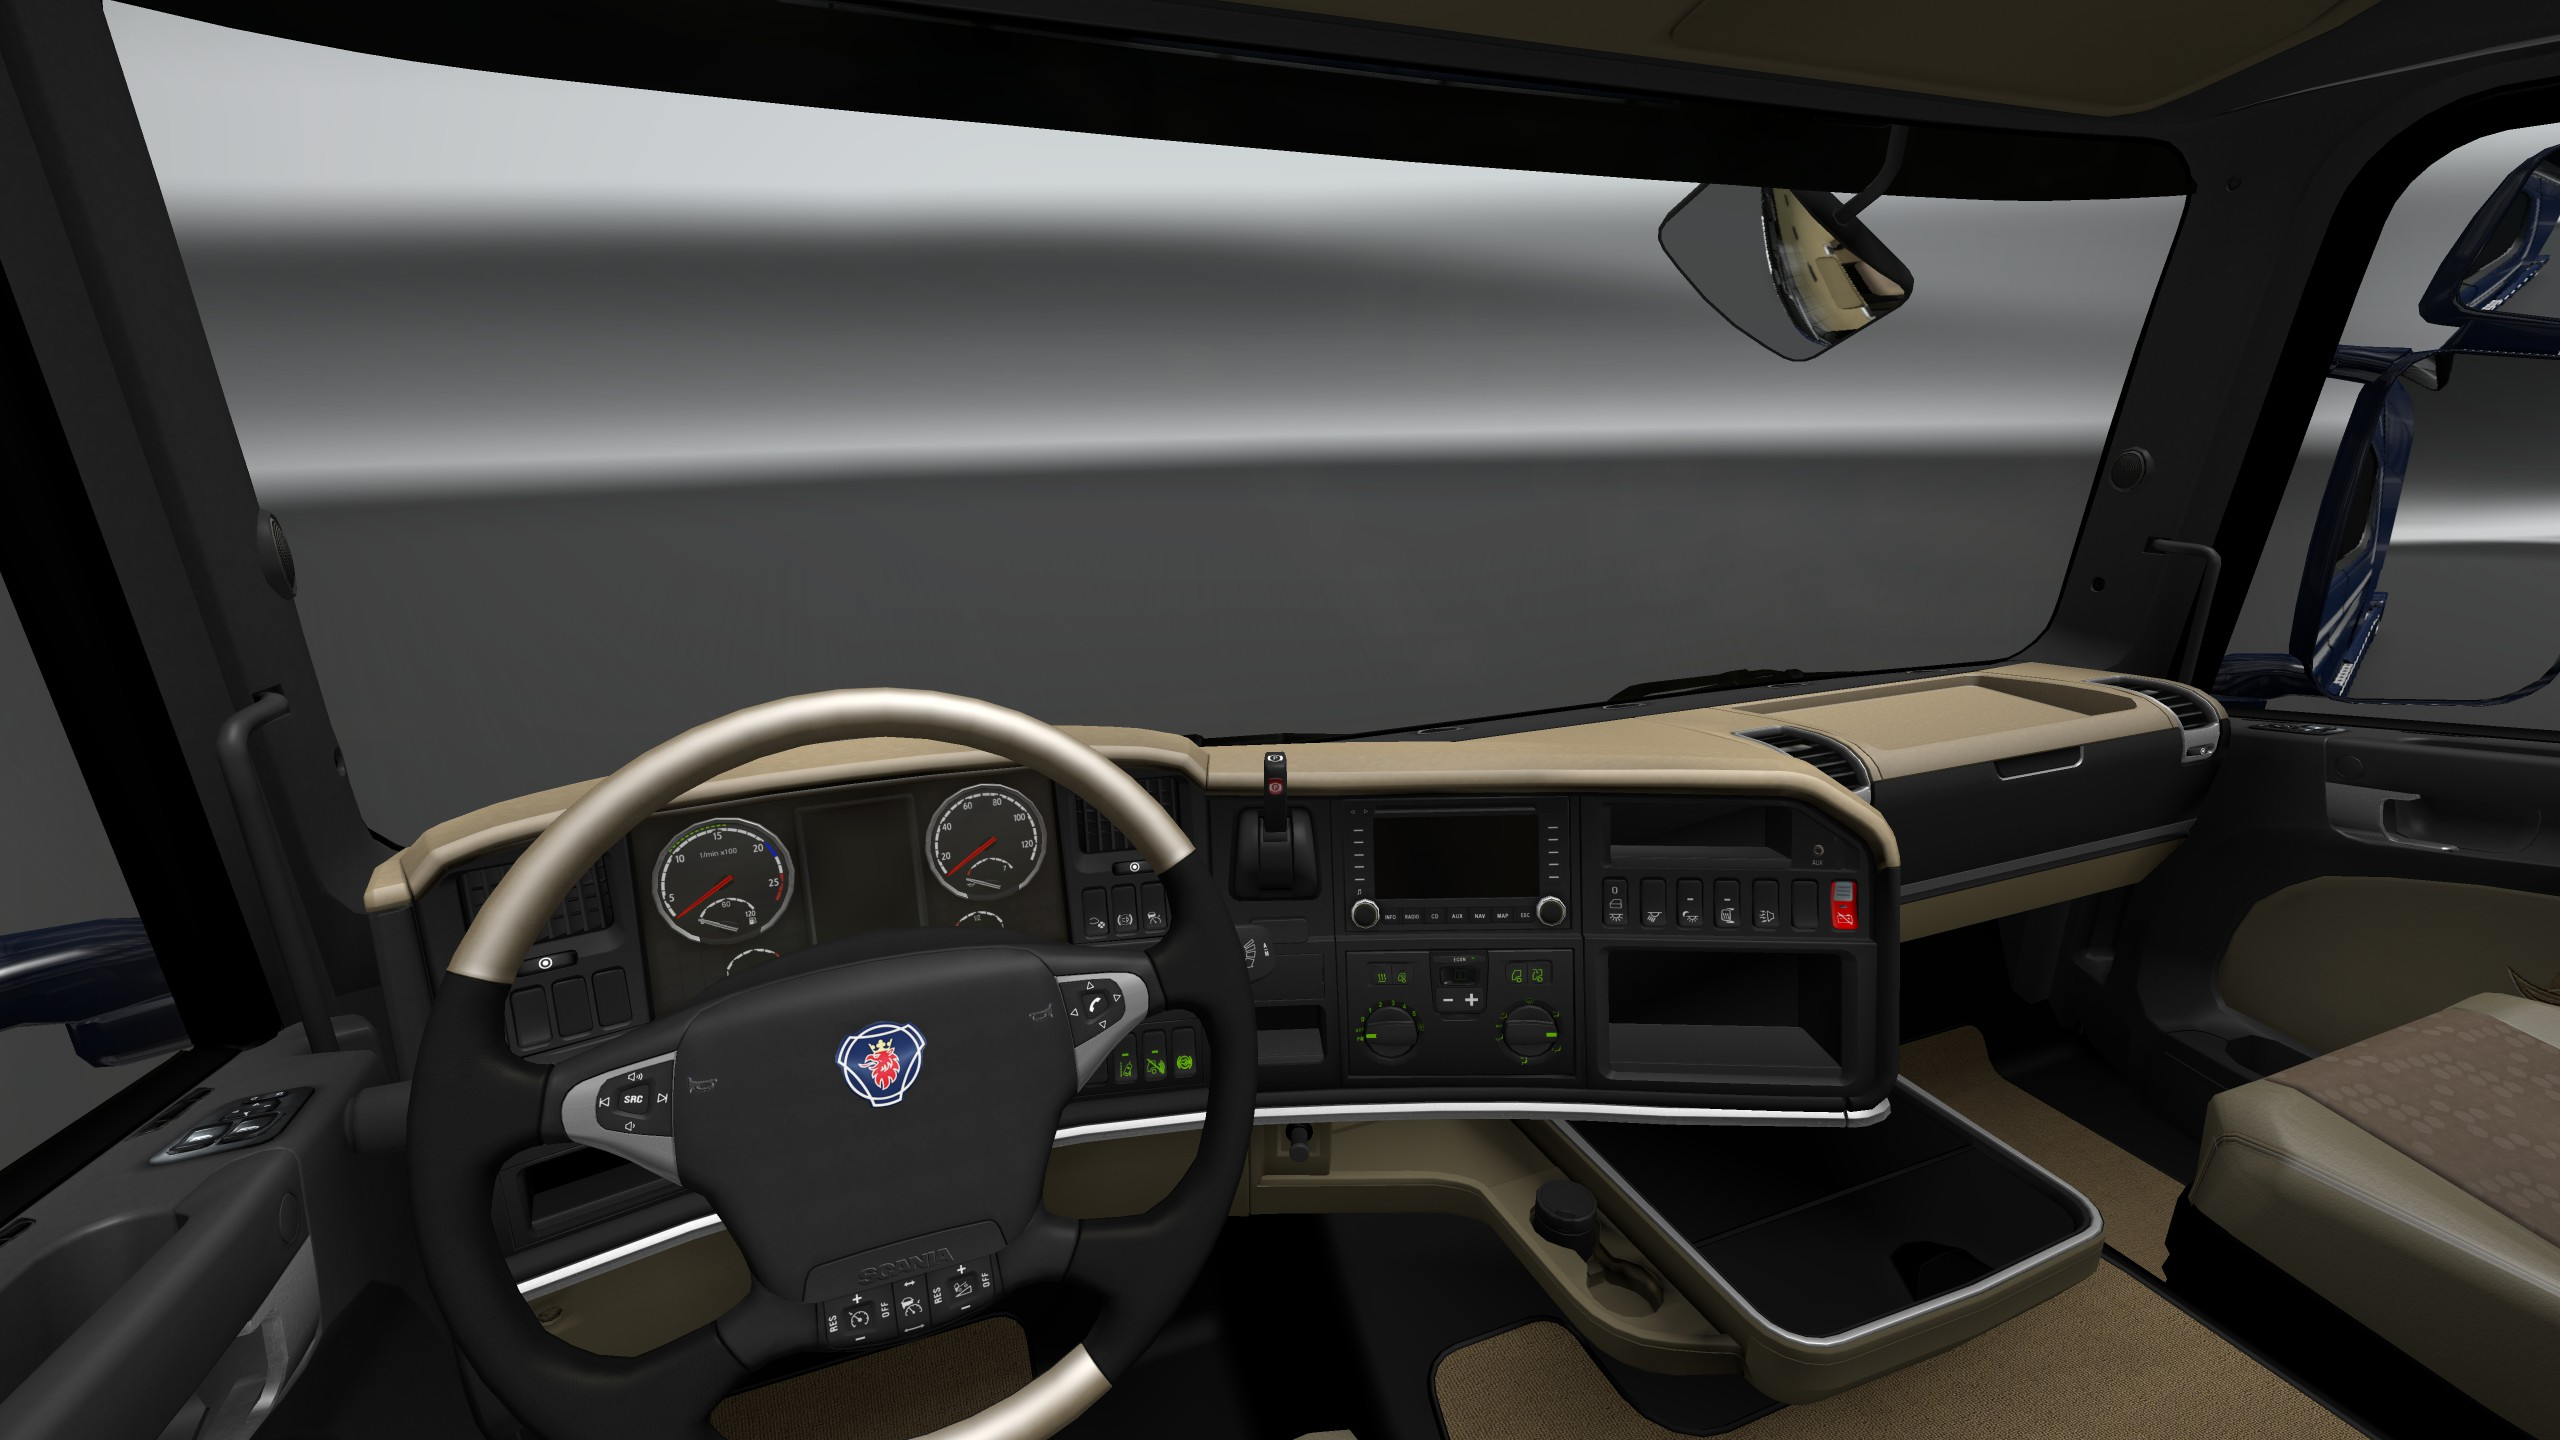 Scania trucks interiors & exteriors improvements pack v1.0